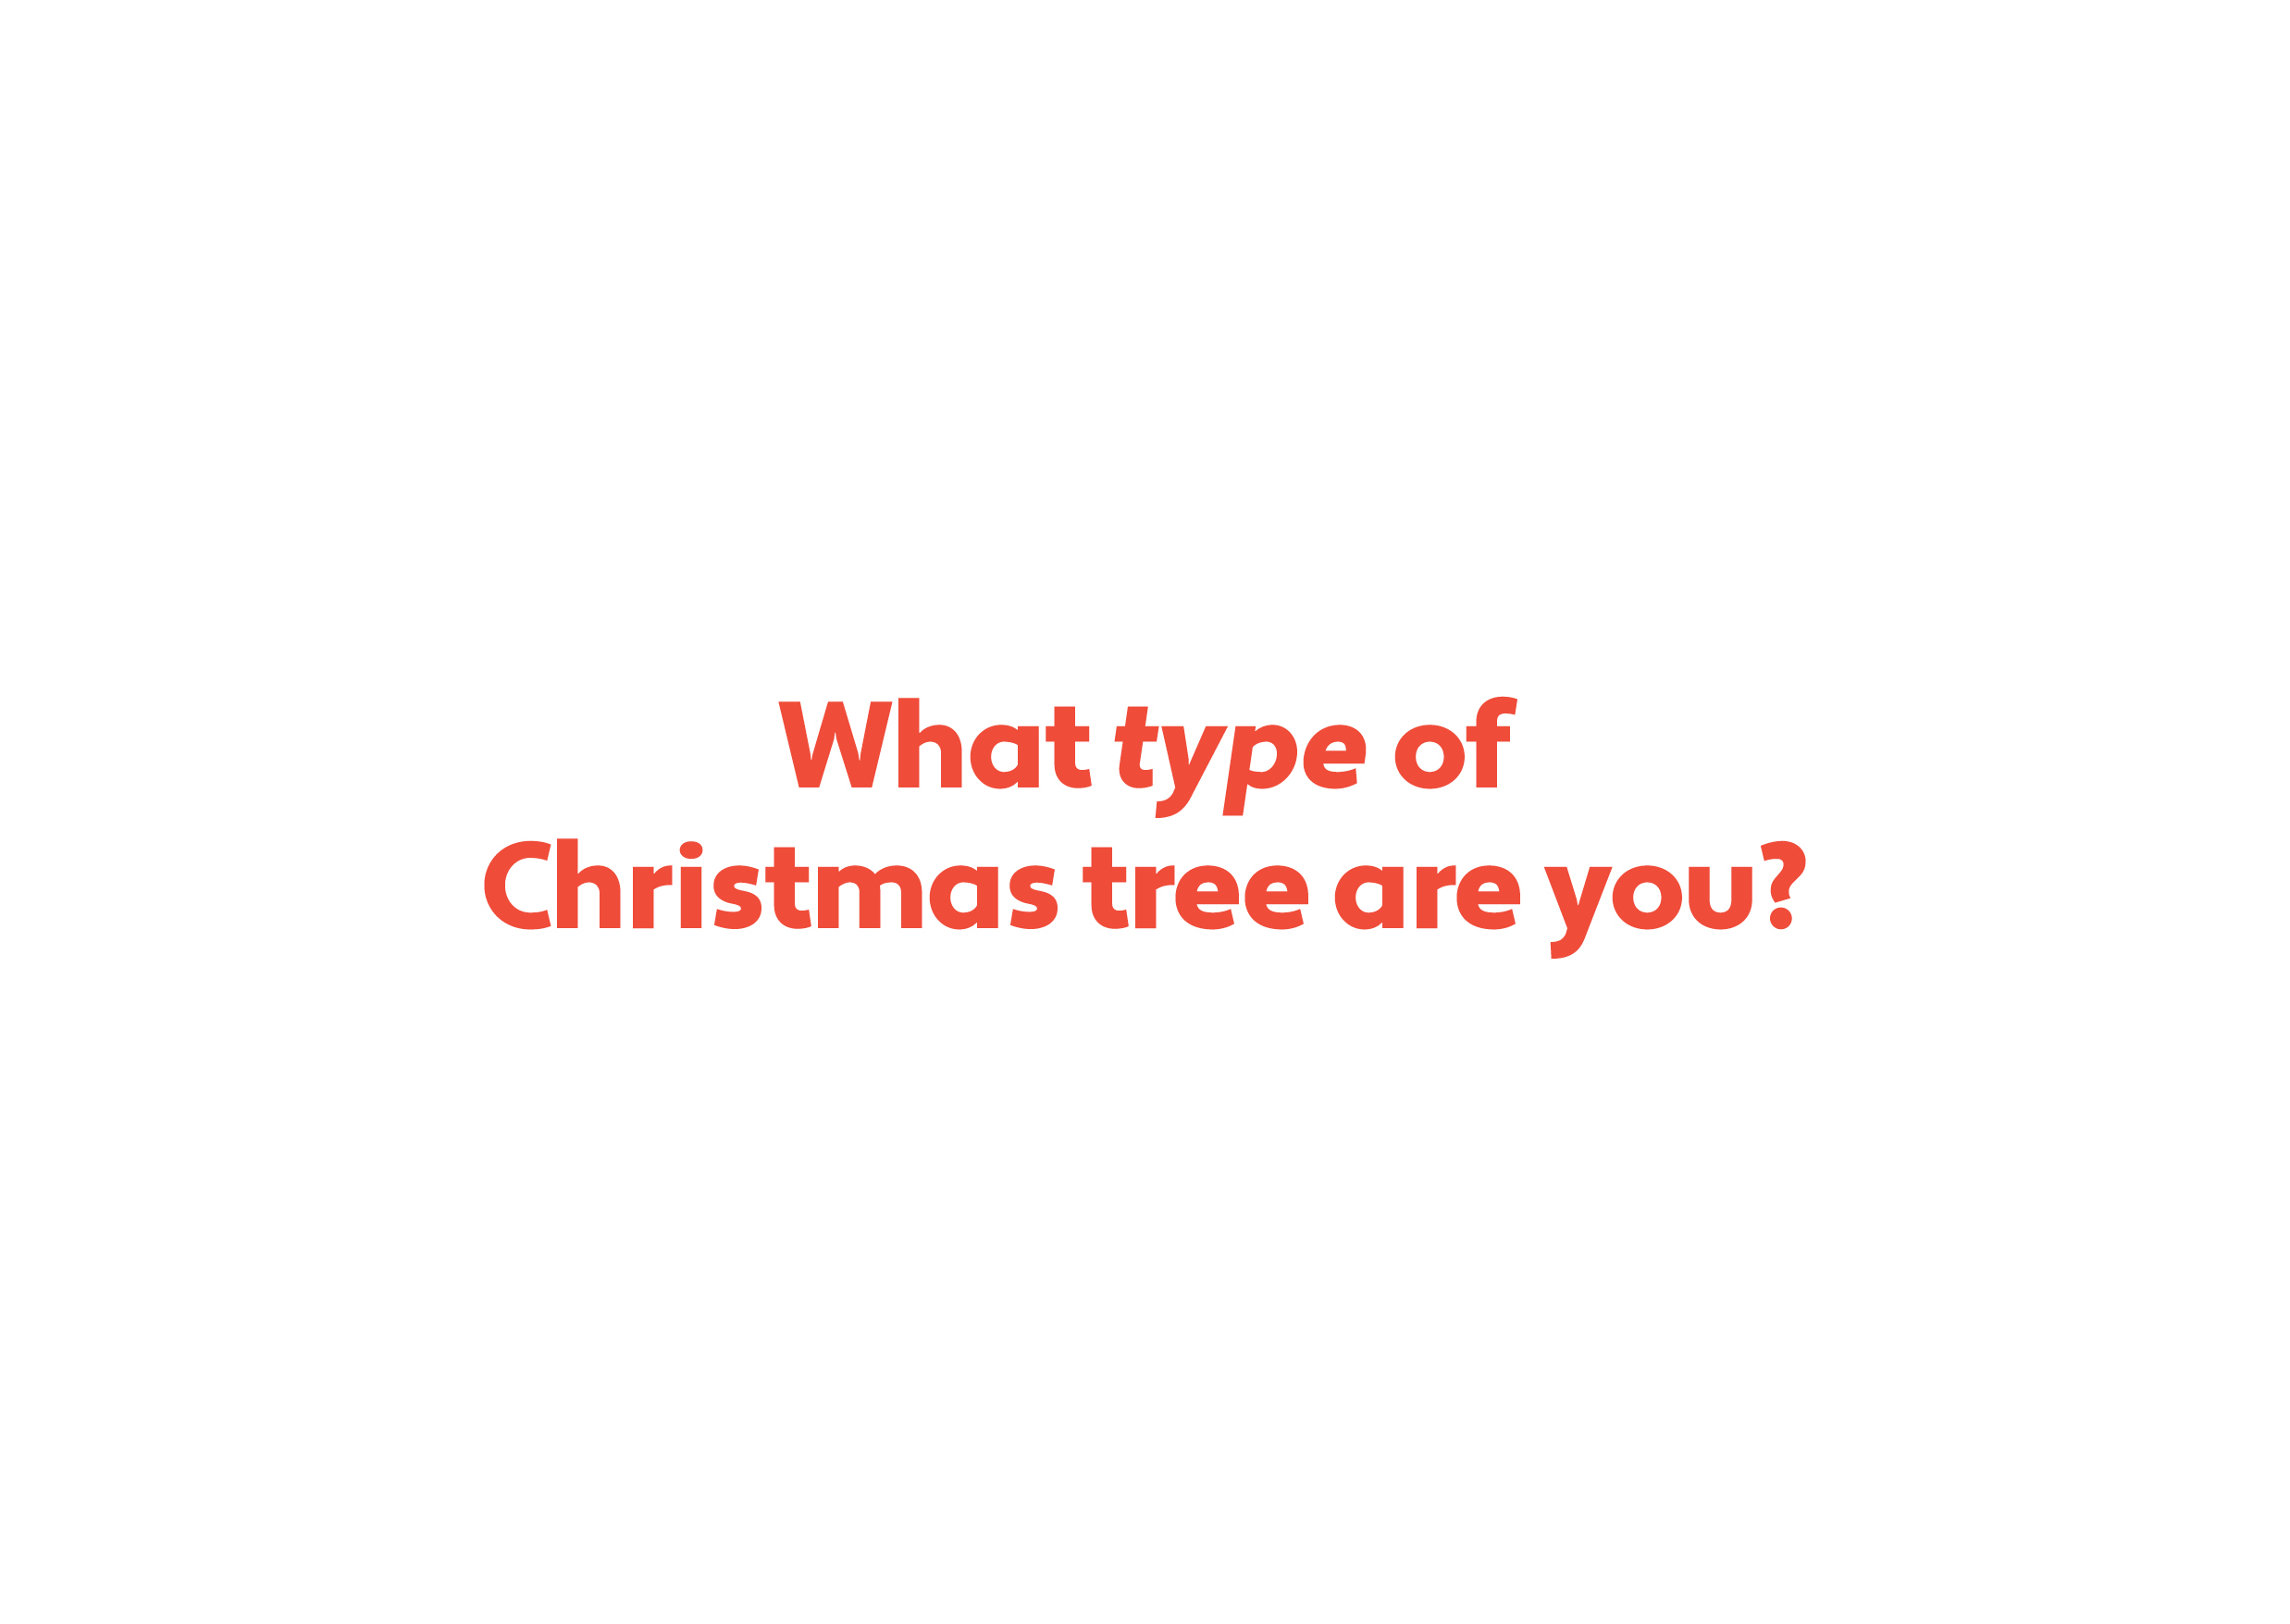 What type of Christmas tree are you?